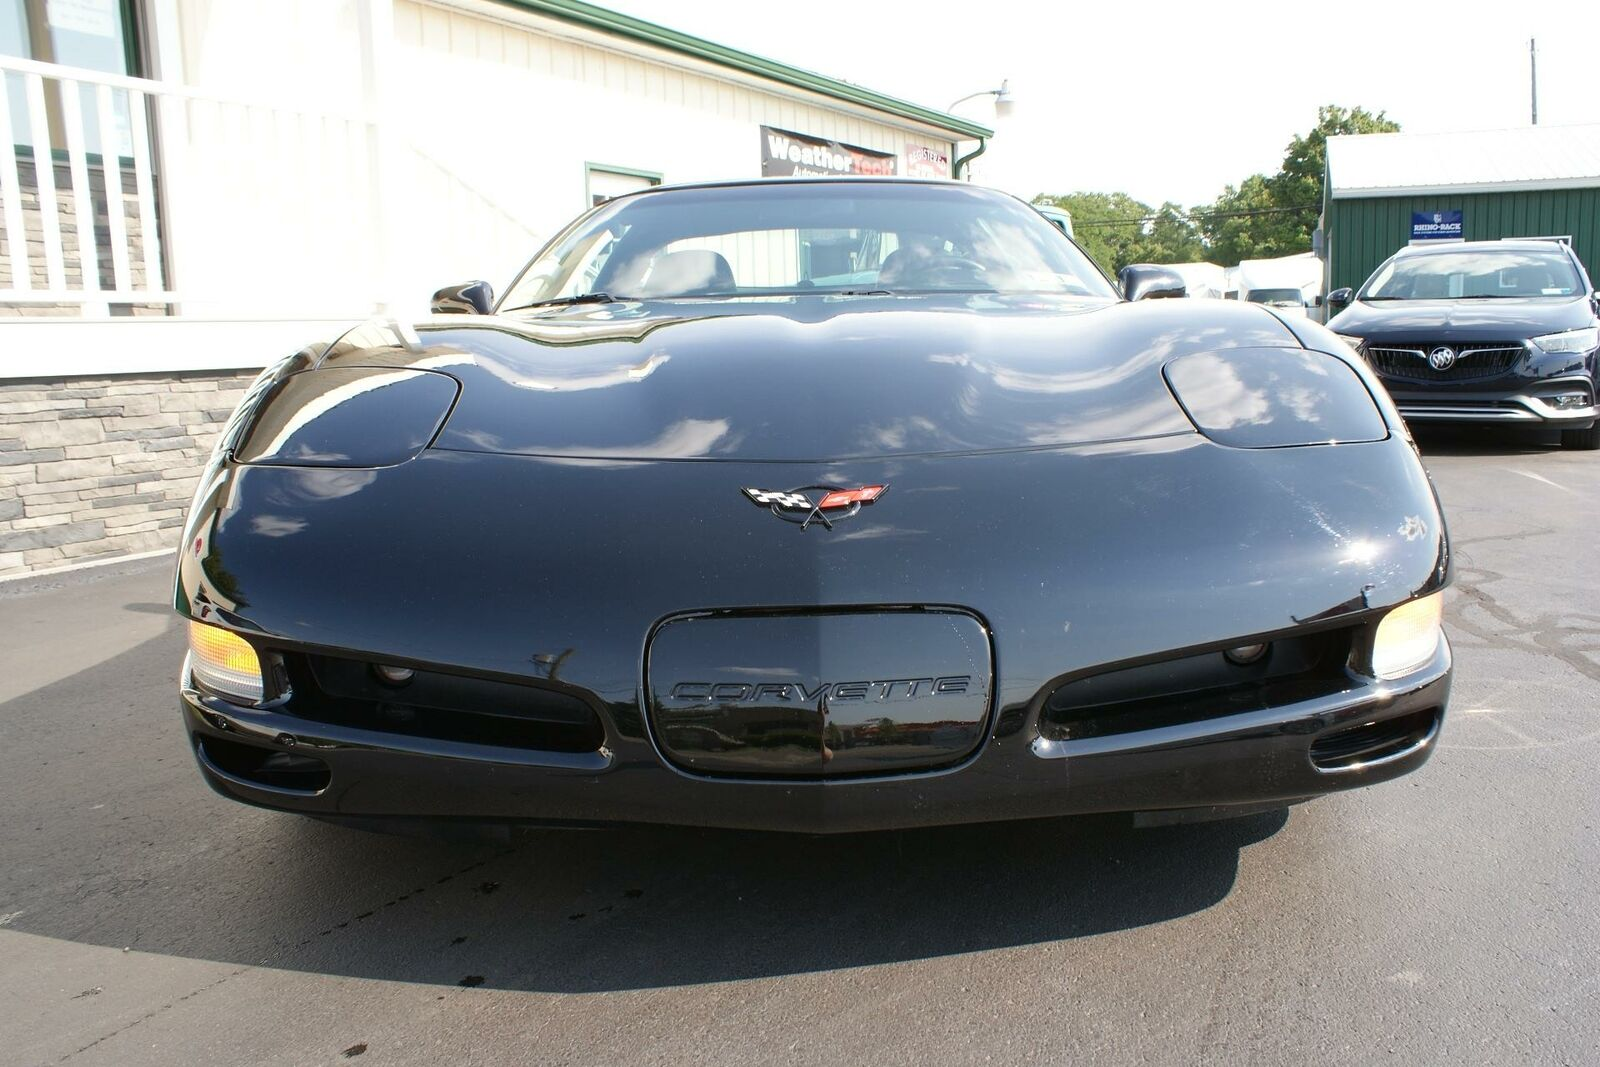 2004 Black Chevrolet Corvette   | C5 Corvette Photo 5